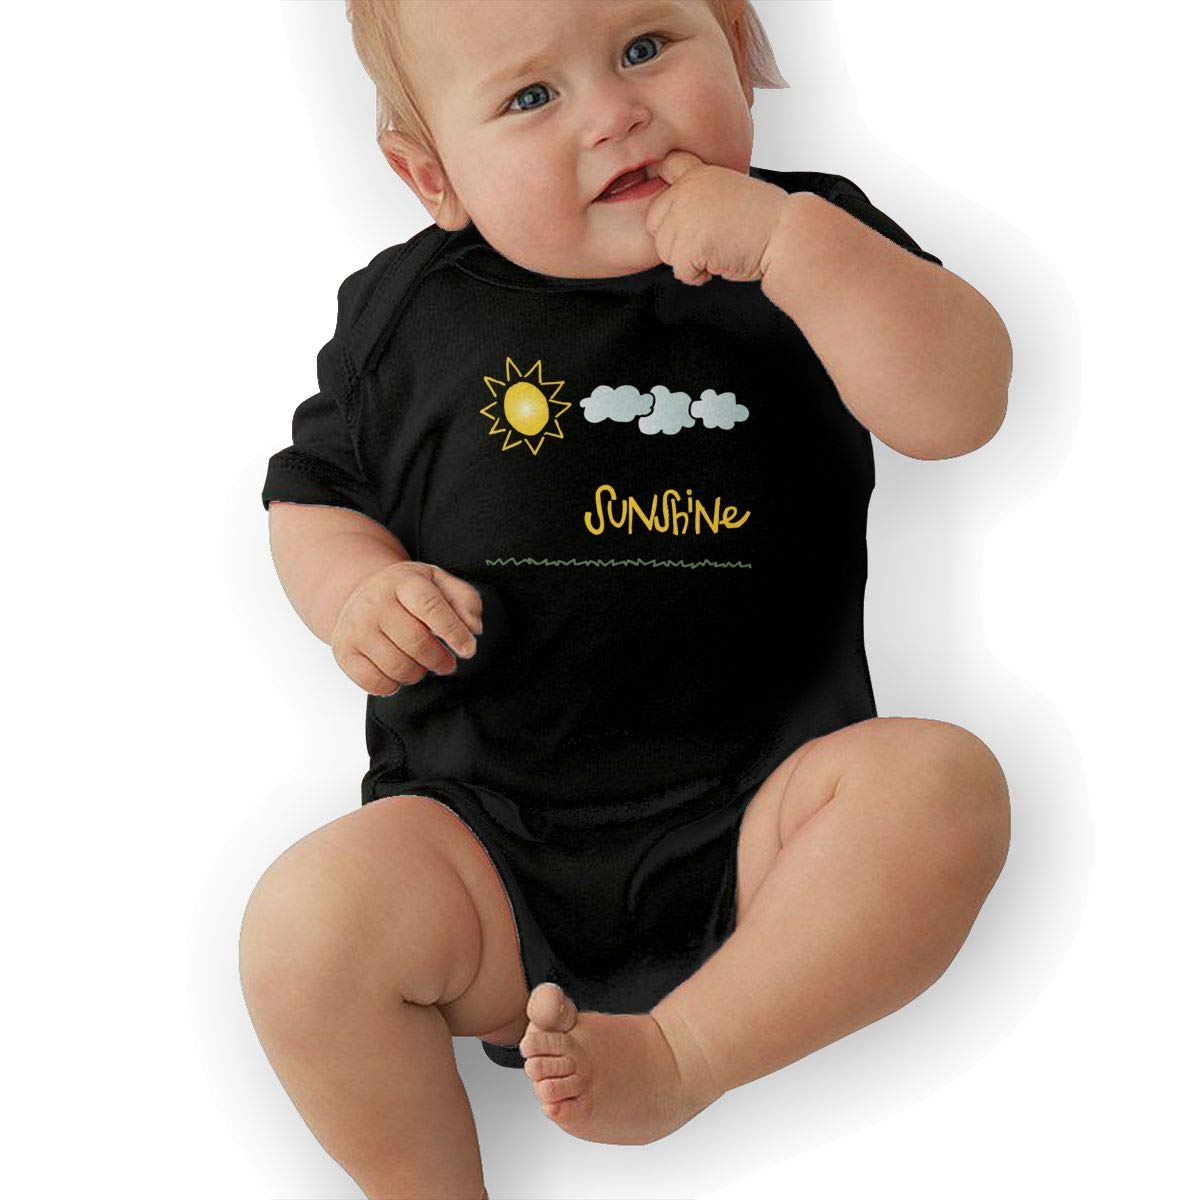 You are My Shine Baby Pajamas Bodysuits Clothes Onesies Jumpsuits Outfits Black